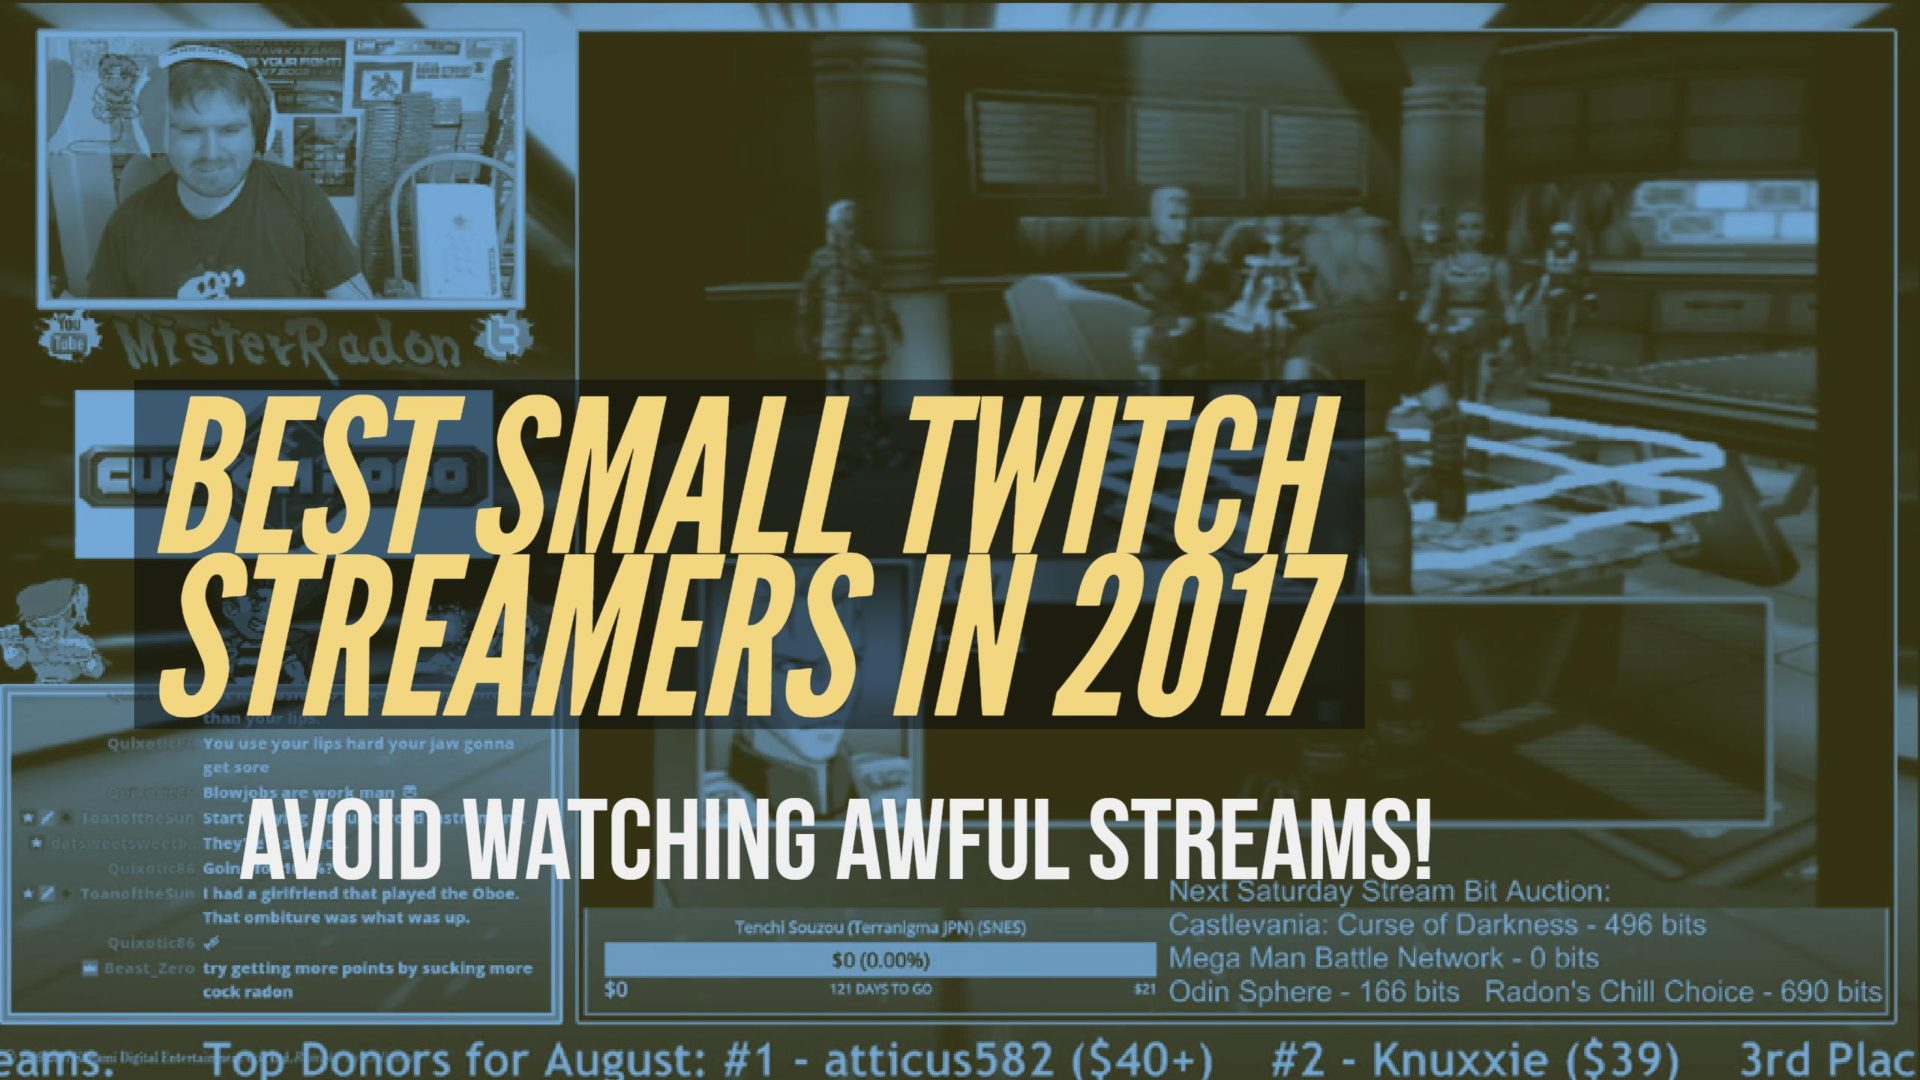 Best Small Twitch Streamers in 2017